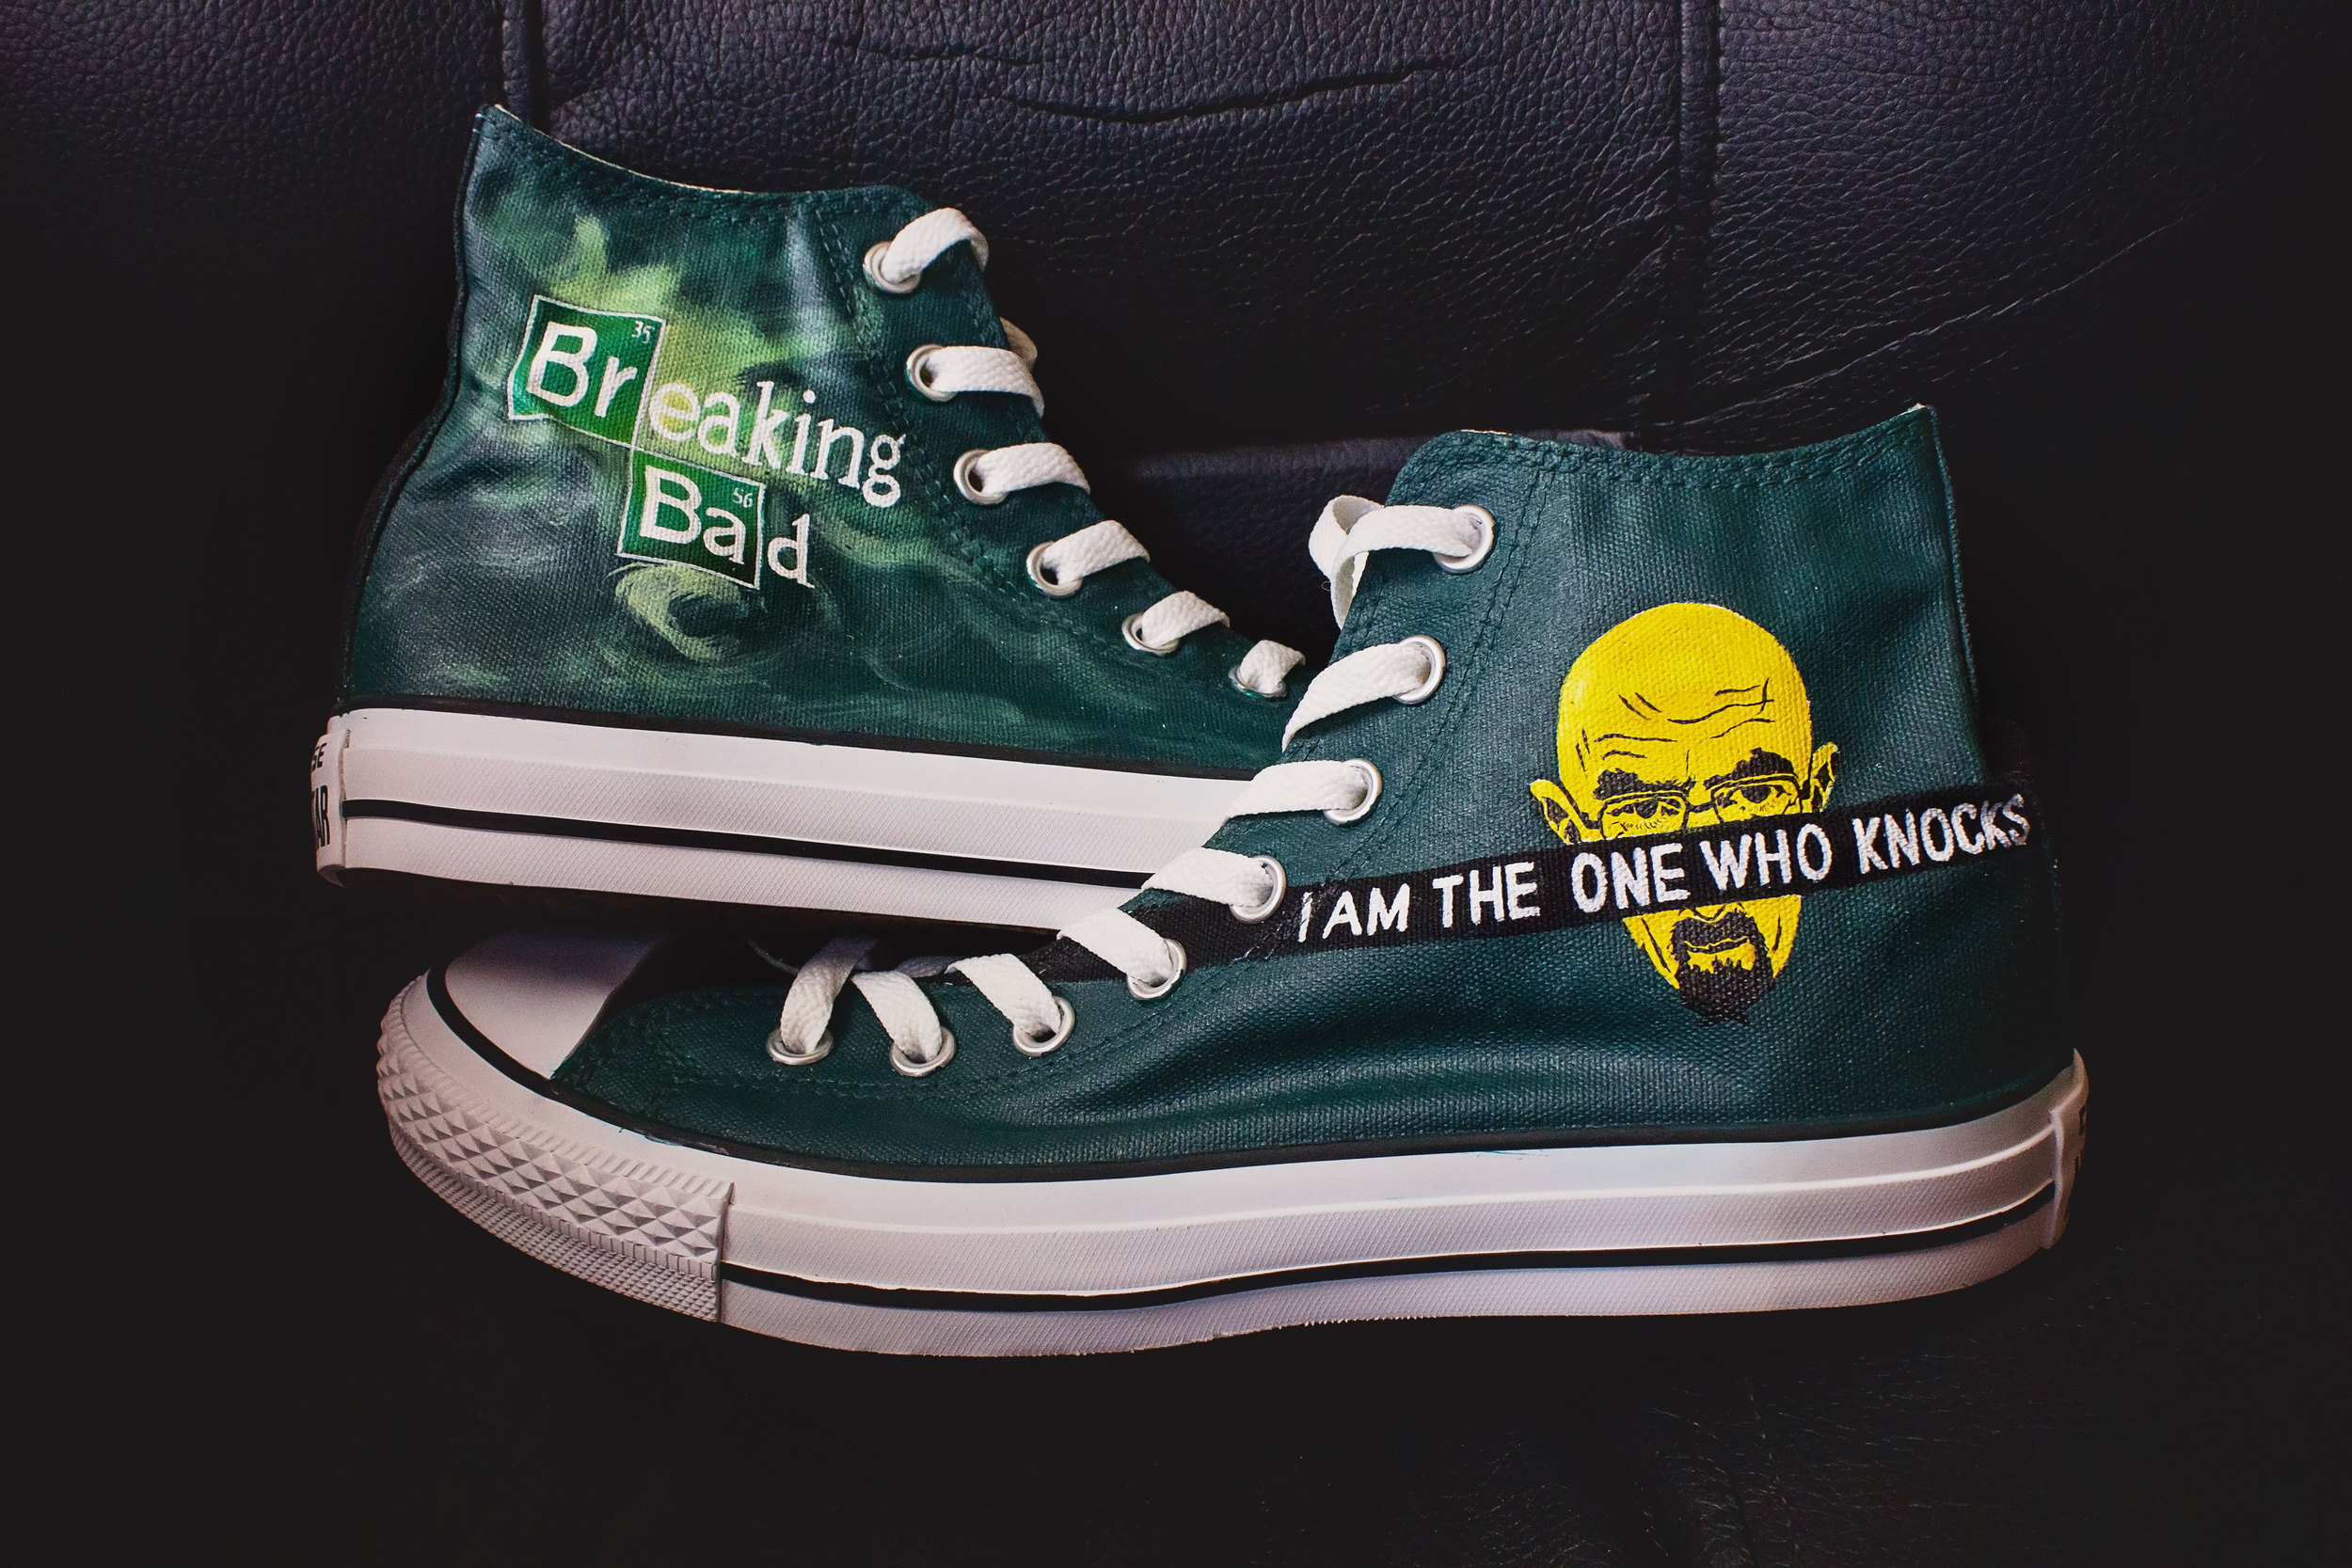 Quick thanks to the artist who painted these custom Converse for my husband! Get yours, or Walking Dead, or even Justin Bieber if that's your thing. Check out  Cora Hand Painted here !